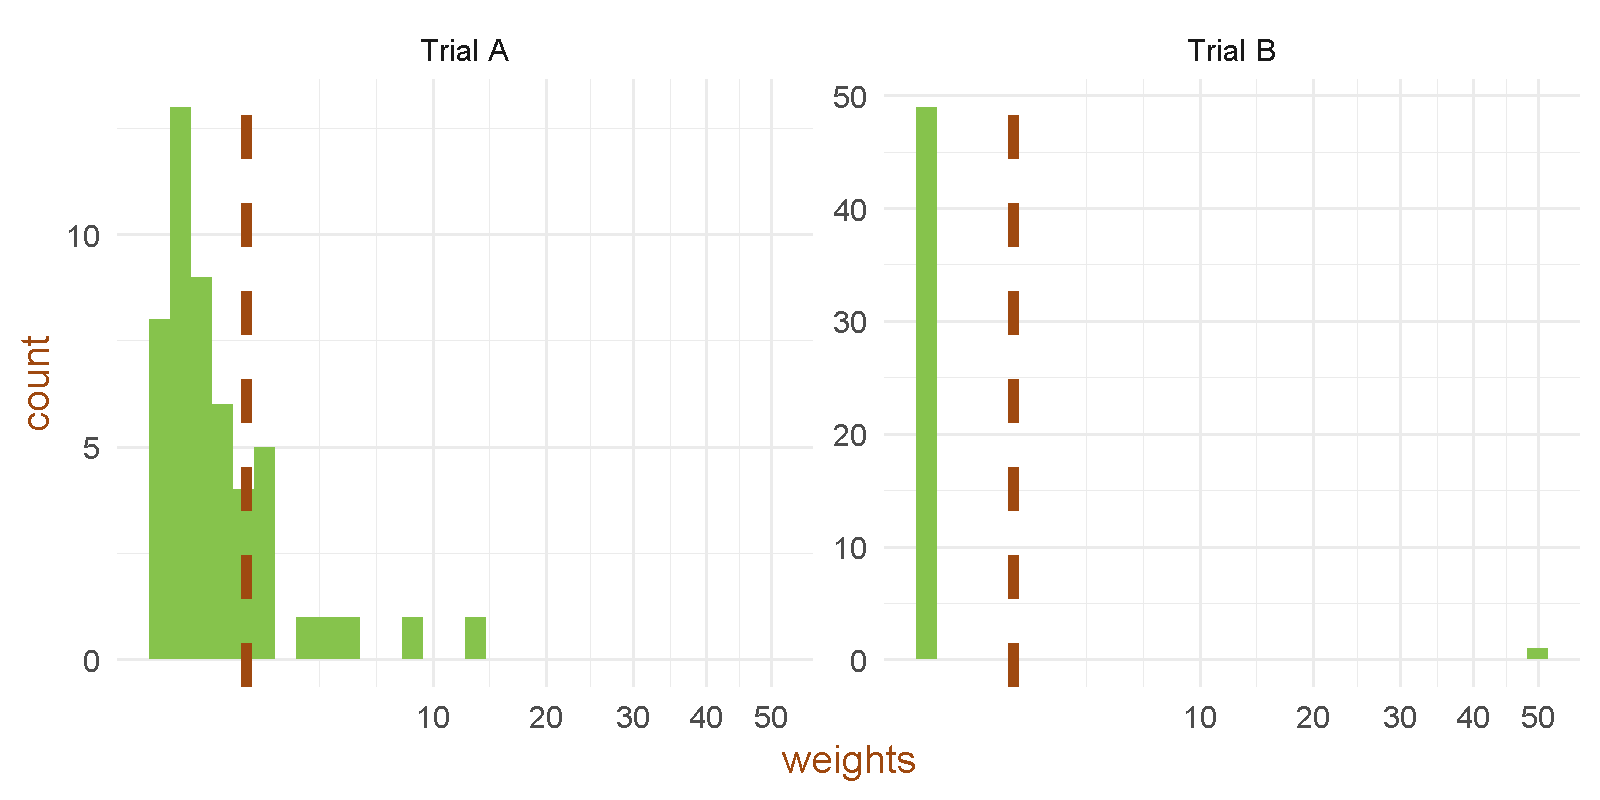 How the calculated MAIC weights are distributed for trial A and trial B, respectively